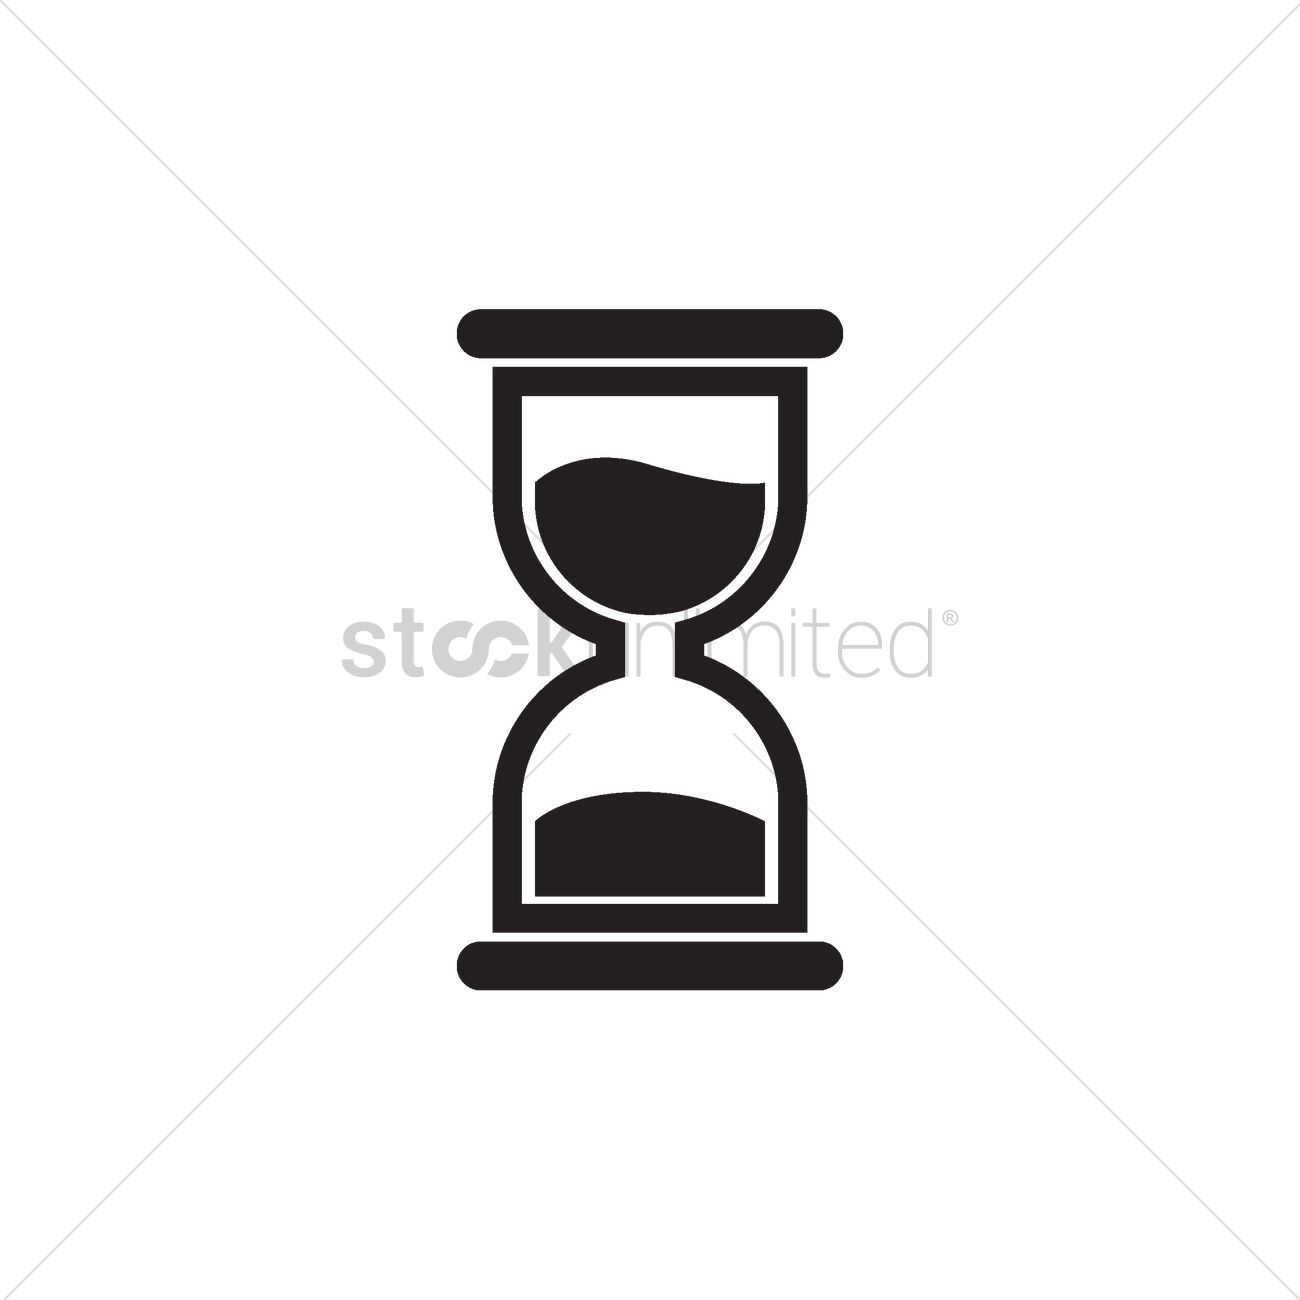 Hour glass icon vector image 2004816 stockunlimited hour glass icon vector graphic biocorpaavc Images